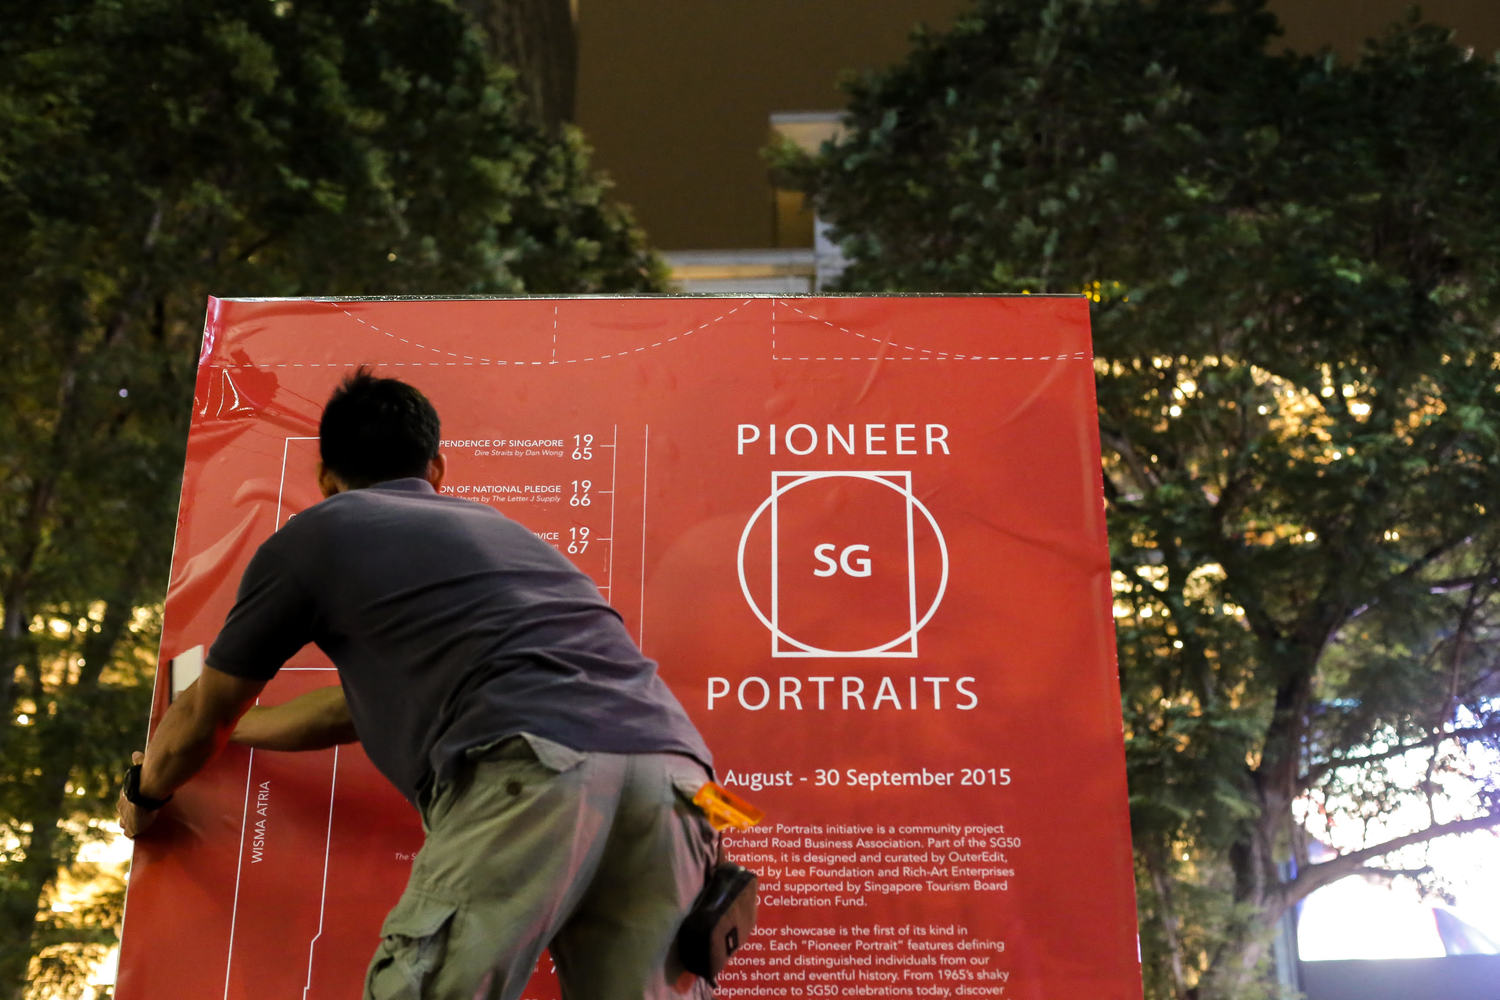 outeredit - SG50 - Pioneer Portraits 2